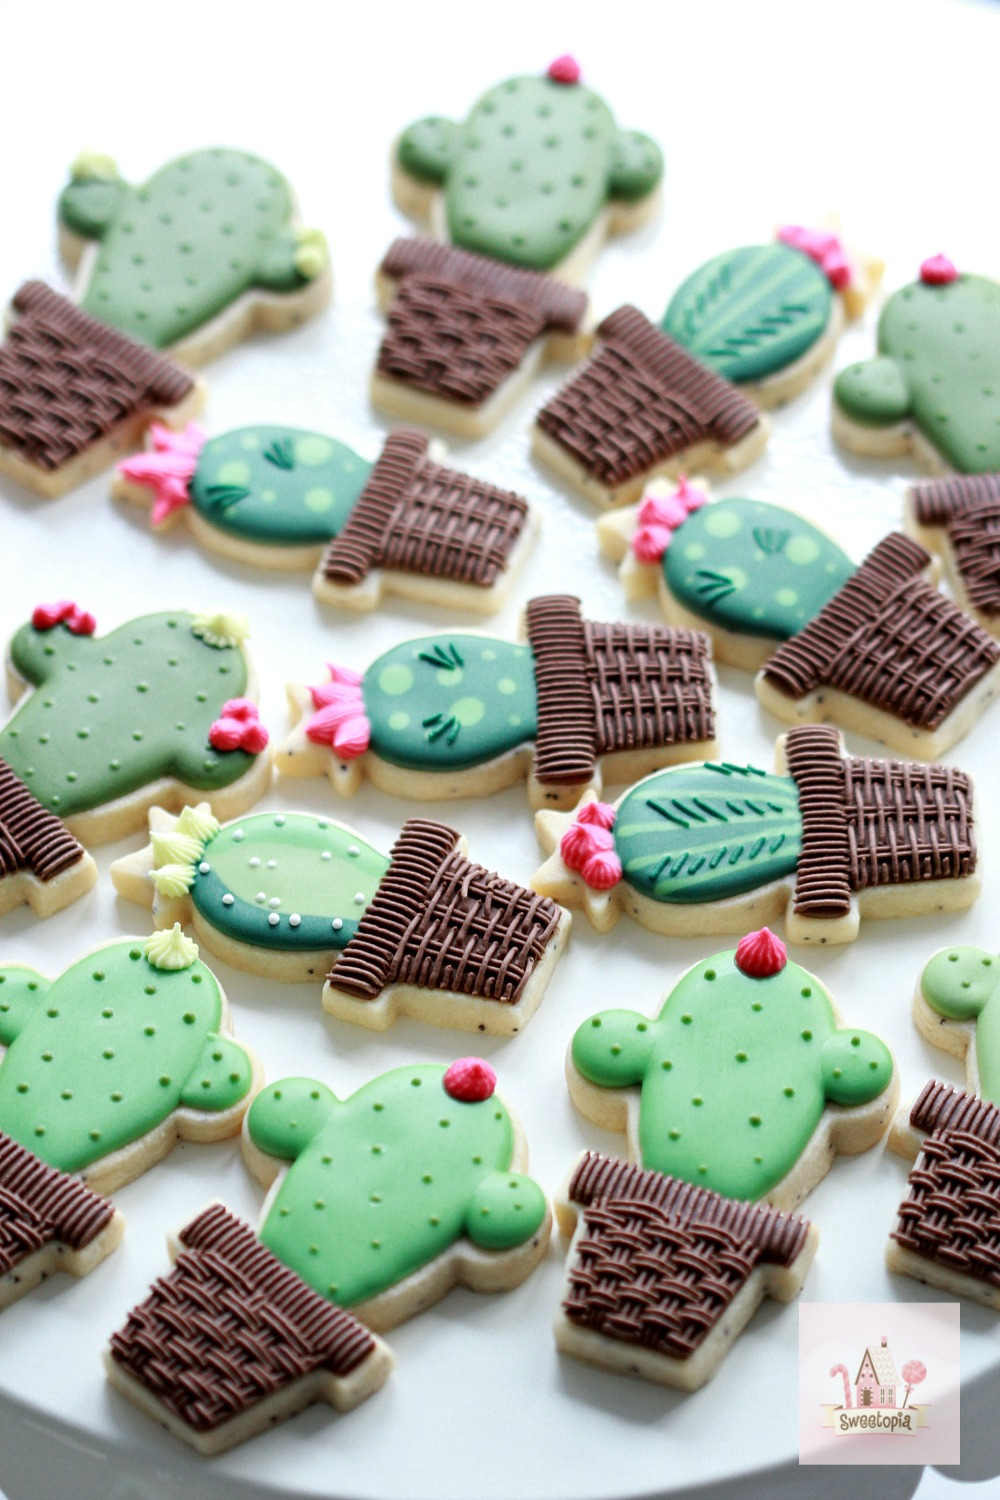 Video How to Decorate Cactus Cookies with Royal Icing